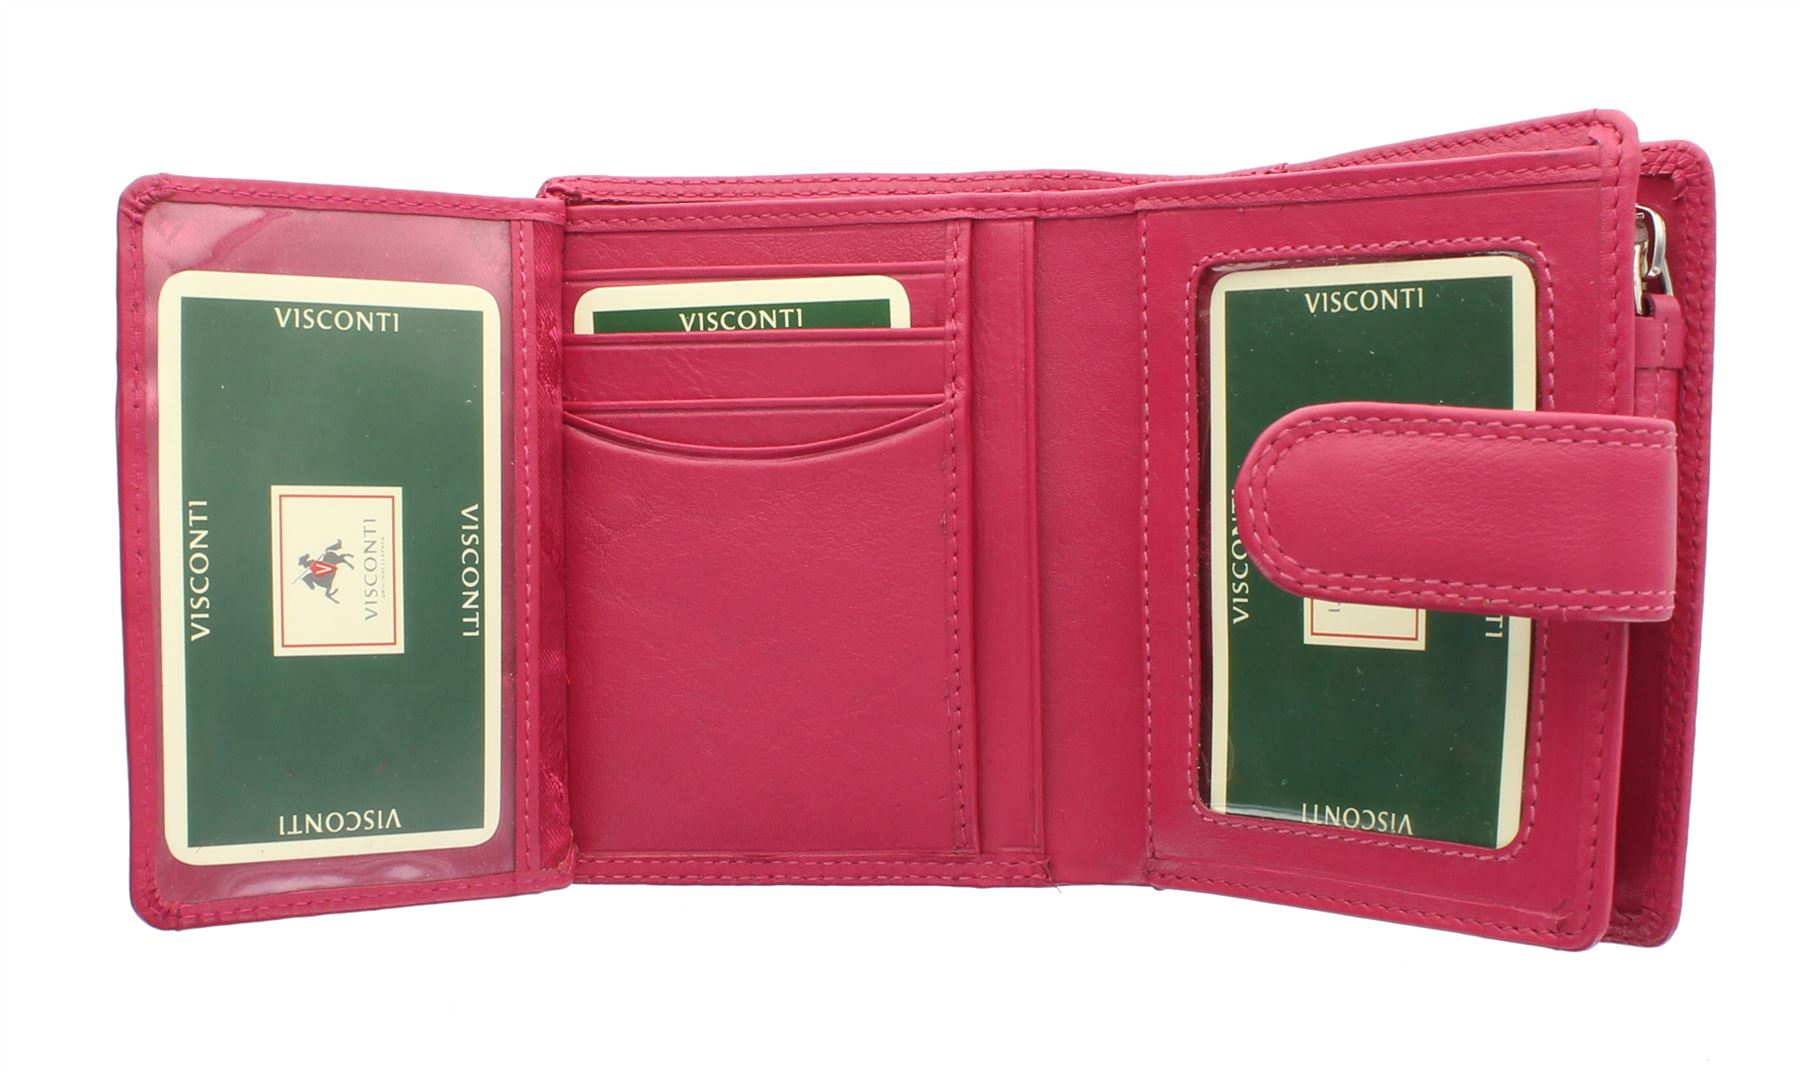 Visconti Heritage Collection SOHO Compact Leather Purse With Tab Closure HT31